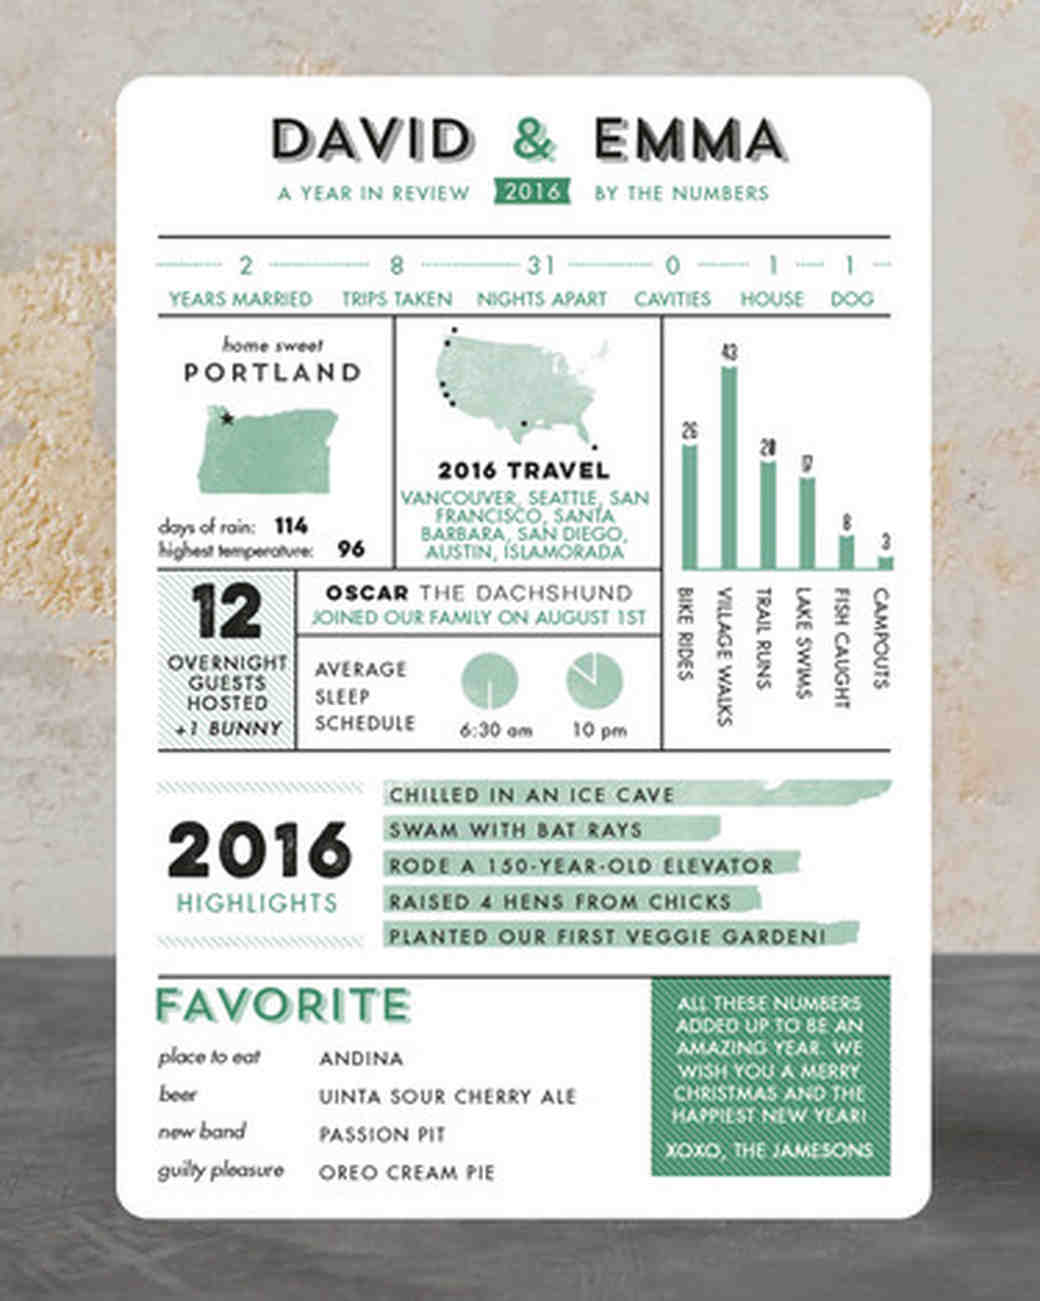 3-infographic-personalize-thank-you-cards.jpg (skyword:336981)